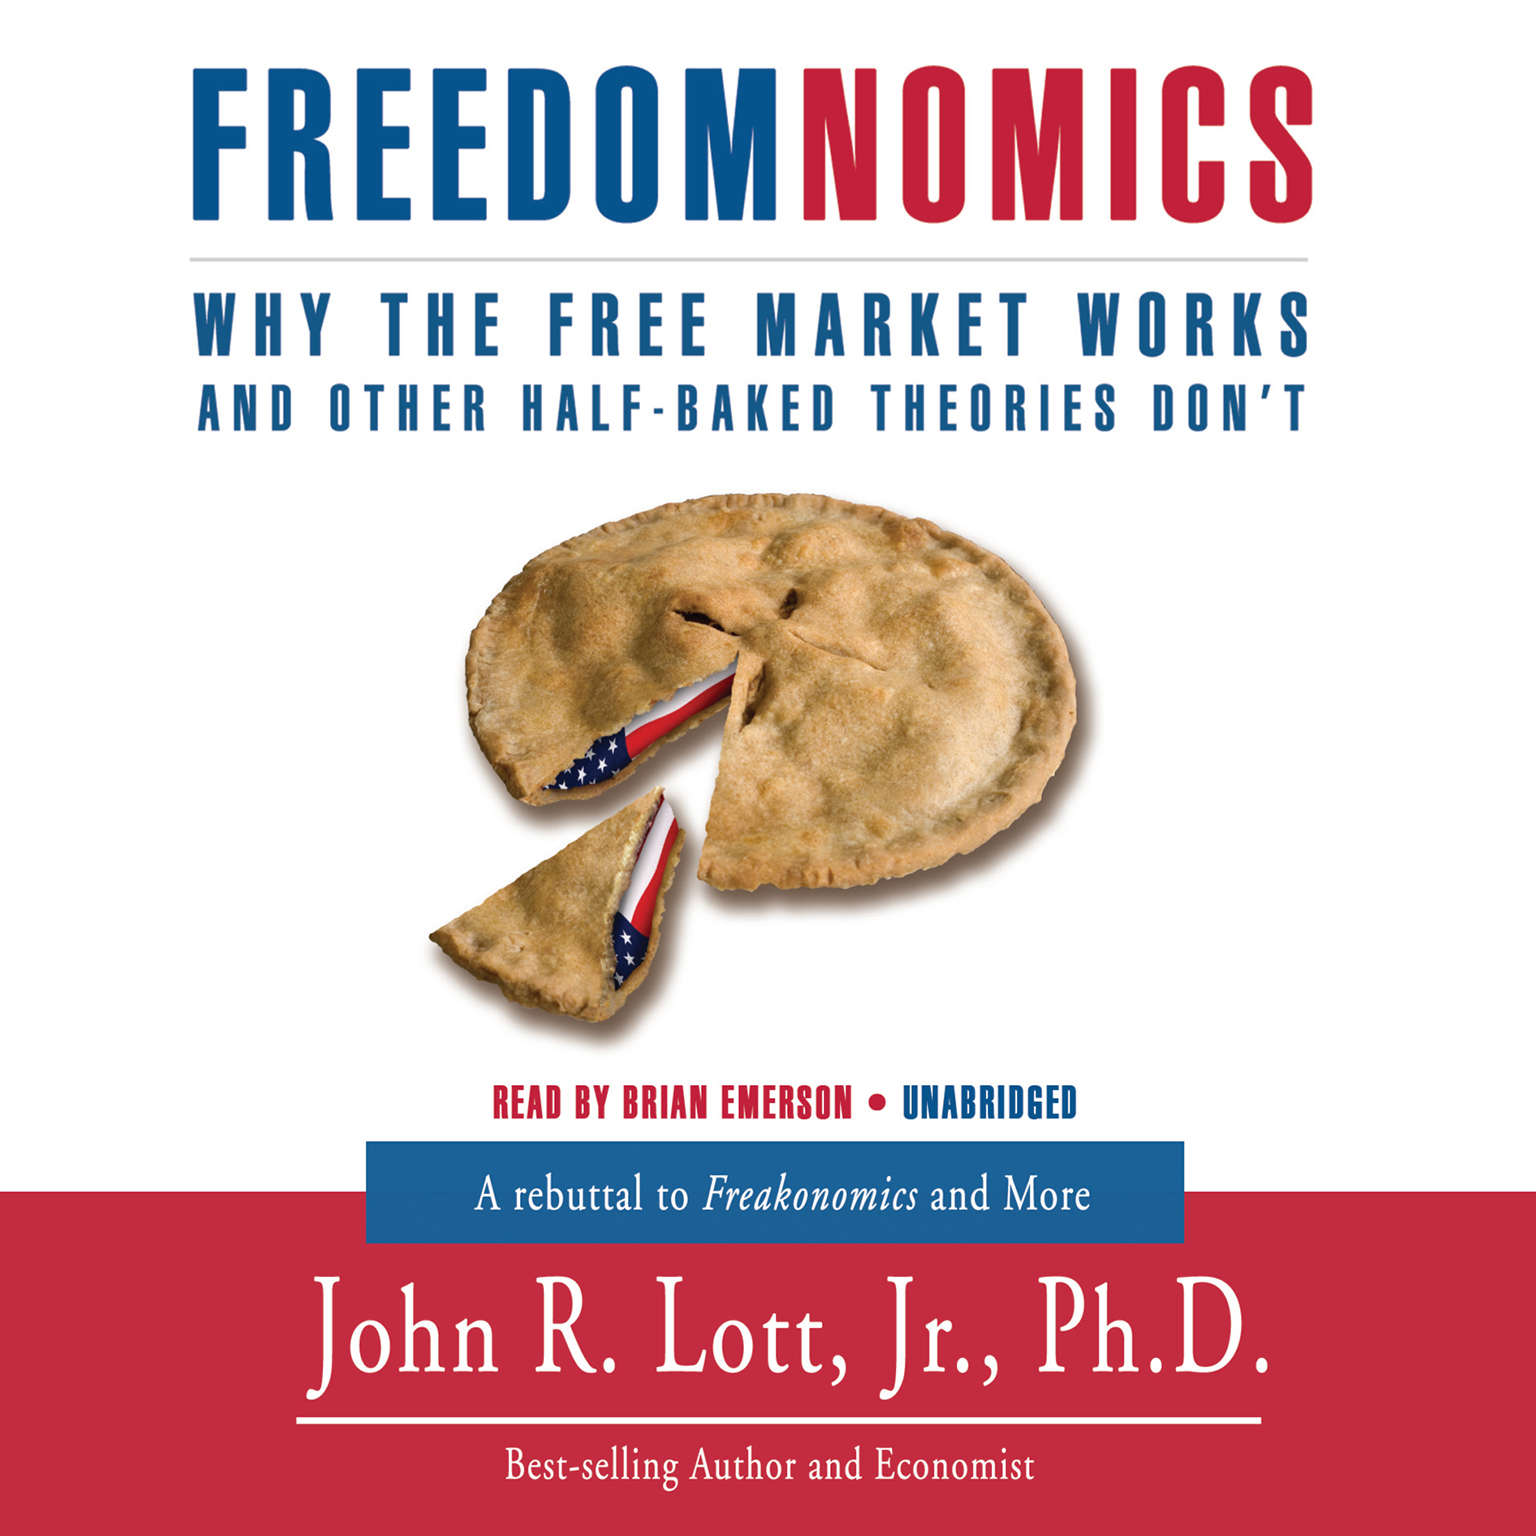 Printable Freedomnomics: Why the Free Market Works and Other Half-Baked Theories Don't Audiobook Cover Art